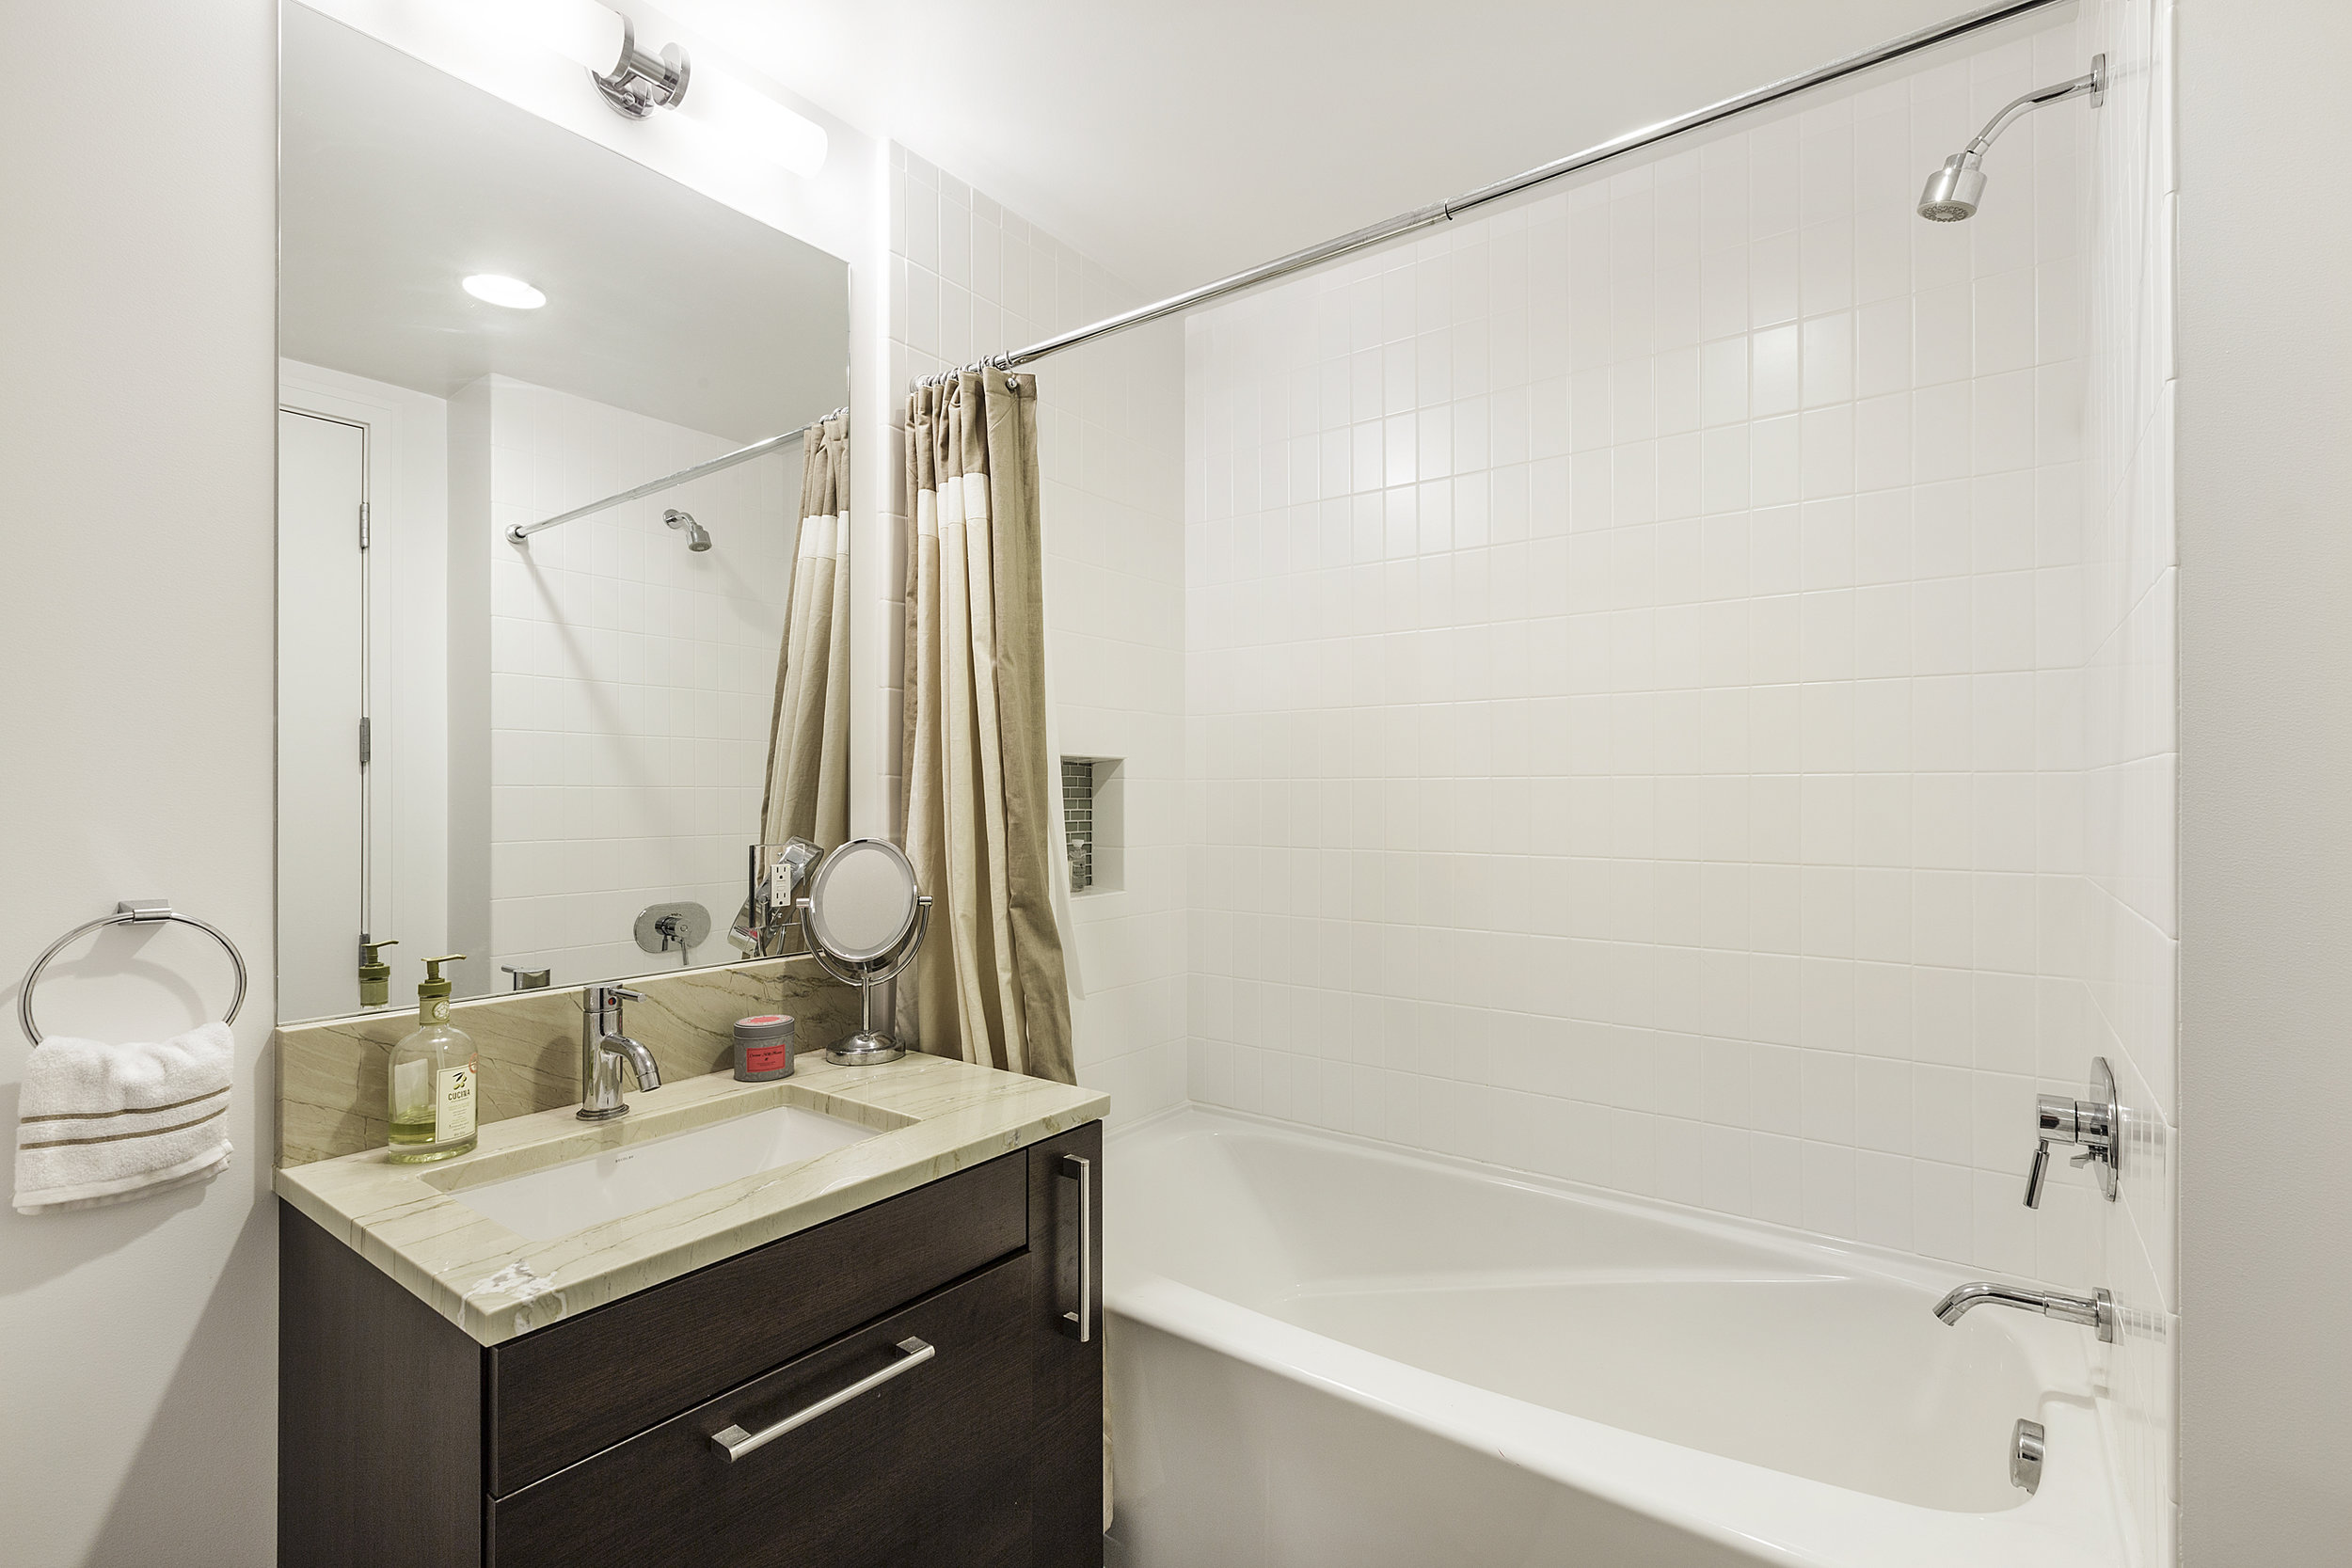 16-631Folsom5C-2bath-high-res.jpg